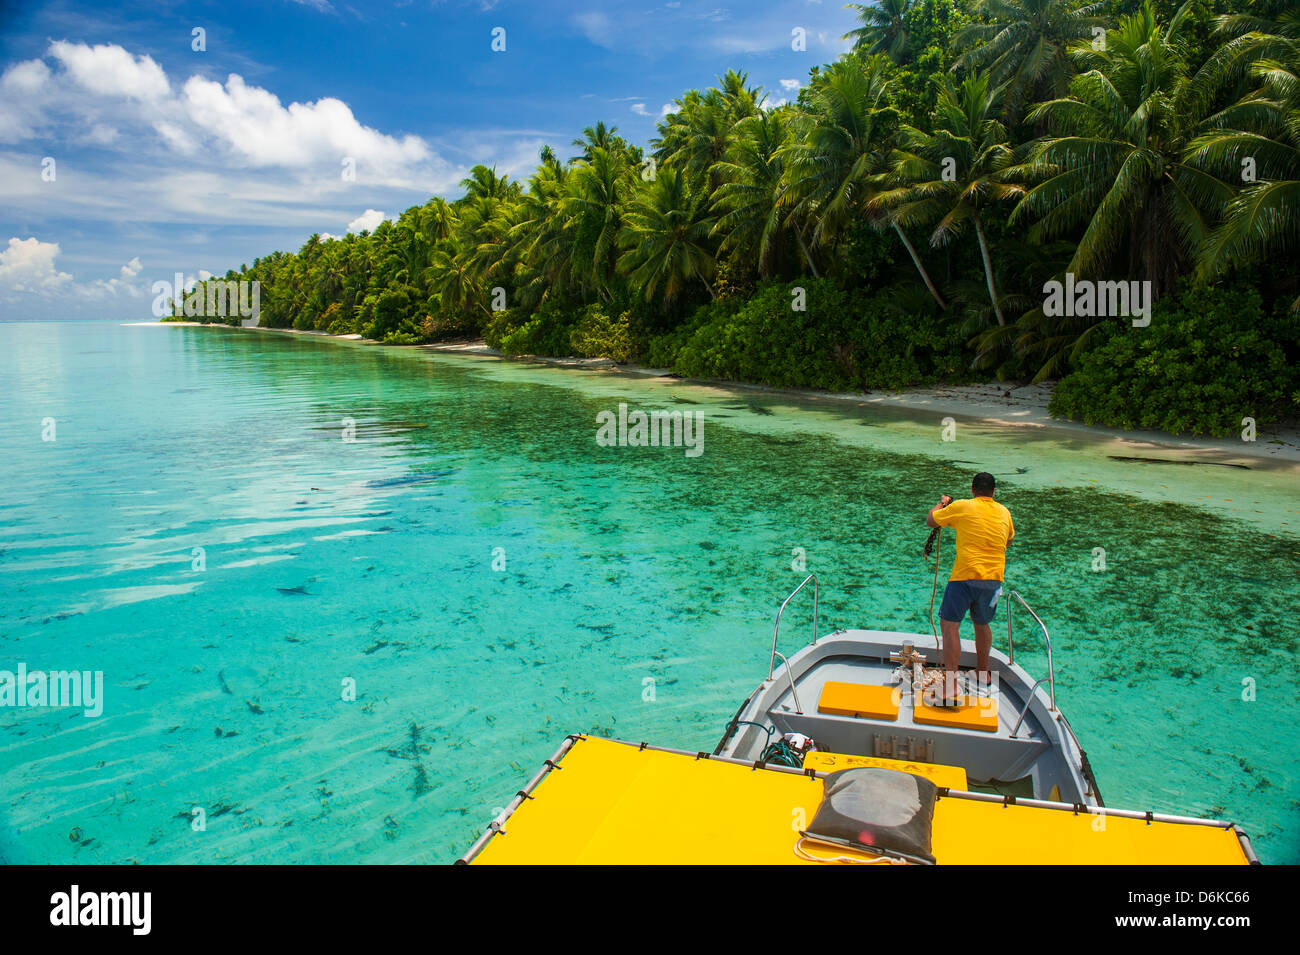 Yellow sundeck of a boat in the Ant Atoll, Pohnpei, Micronesia, Pacific - Stock Image